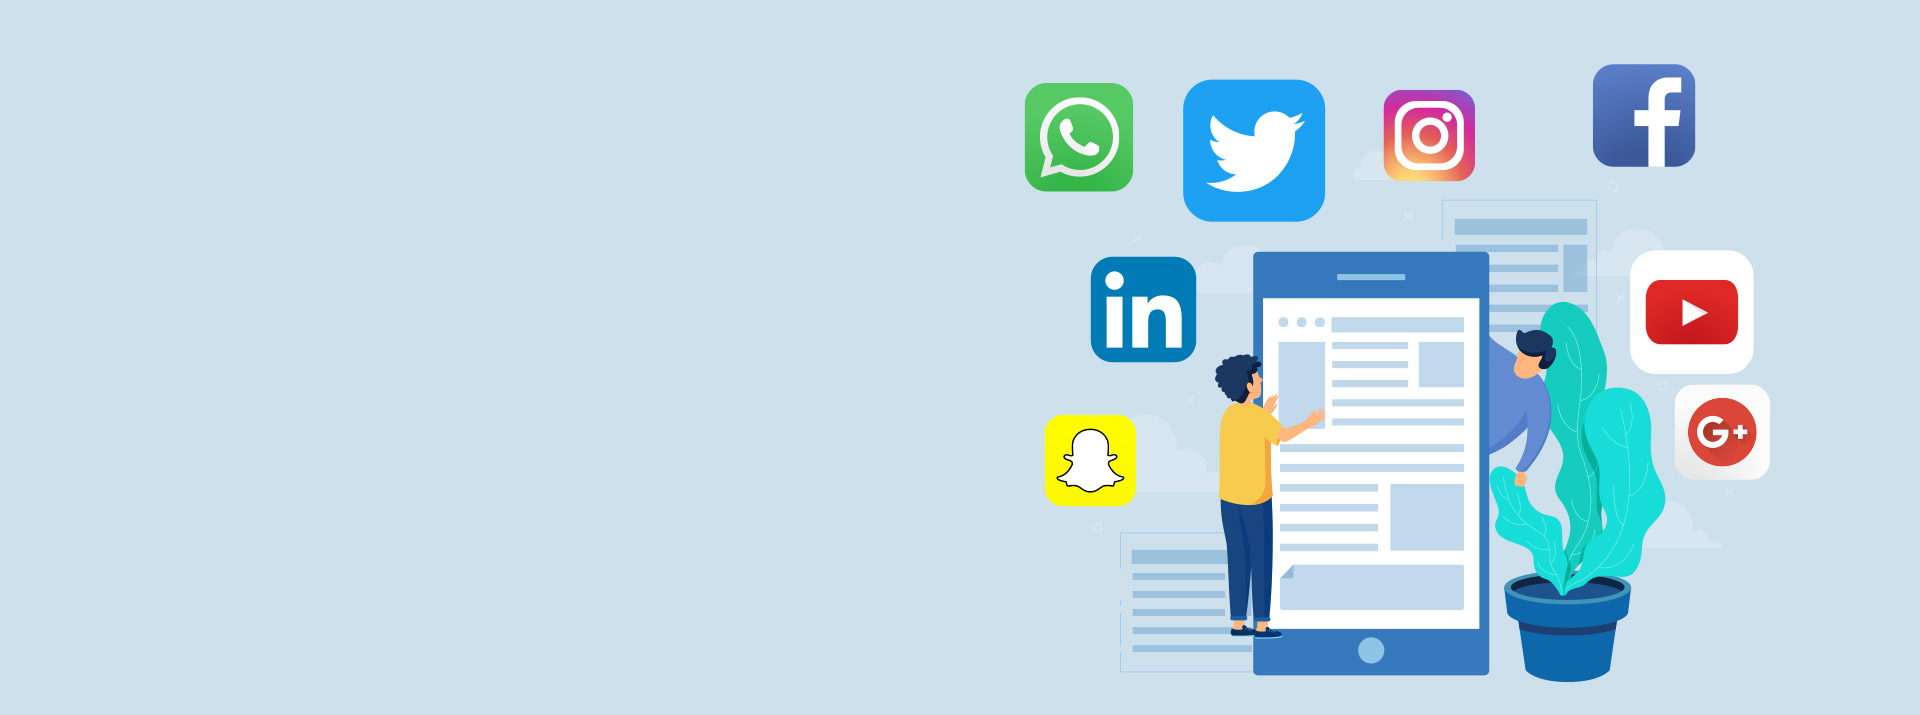 Banner image for social media and dating app development services